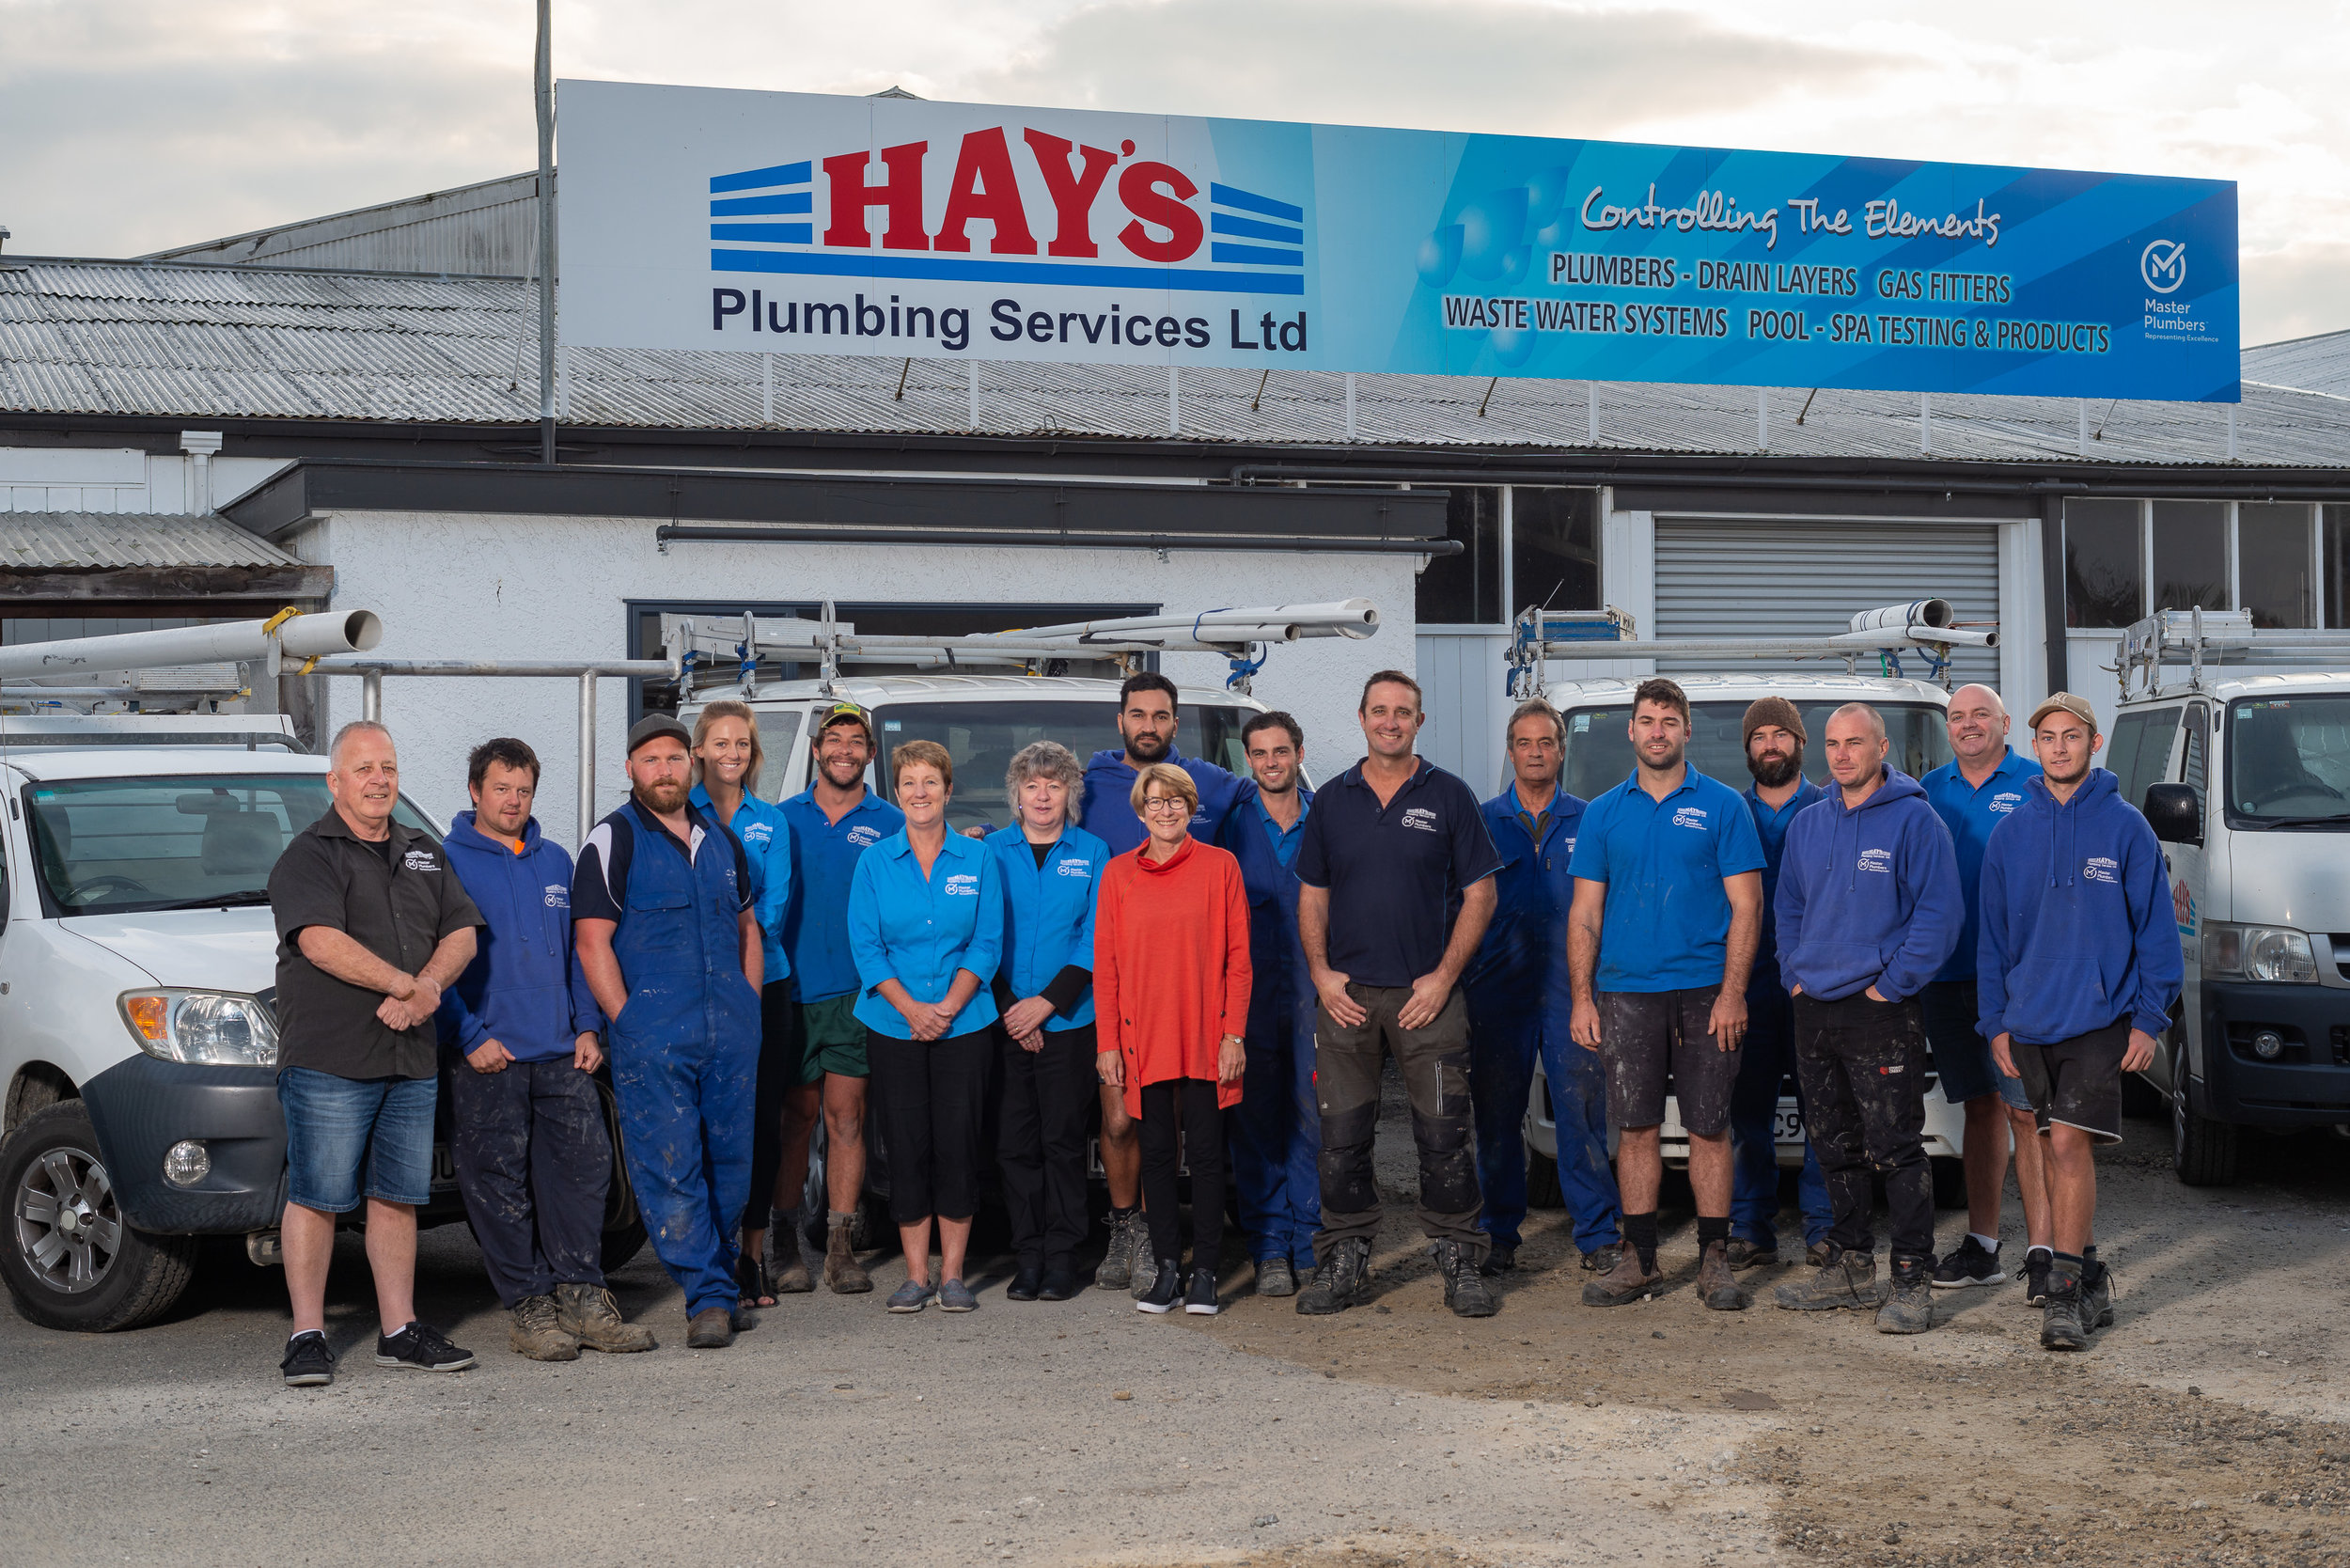 Services - PlumbingOur services cover all of your plumbing needs. Housing, alterations, repairs, maintenance, water tanks, central heating, if it;s plumbing, we've got you covered.DrainageTrenching, Digger Hire, Septic Tank & drainage, Agents for Oasis Clearwater Sewerage Systems, Drain Clearing.GasQualified gas-fitters for installation and maintenance. Kitchens, hot water, commercial and residential customers.